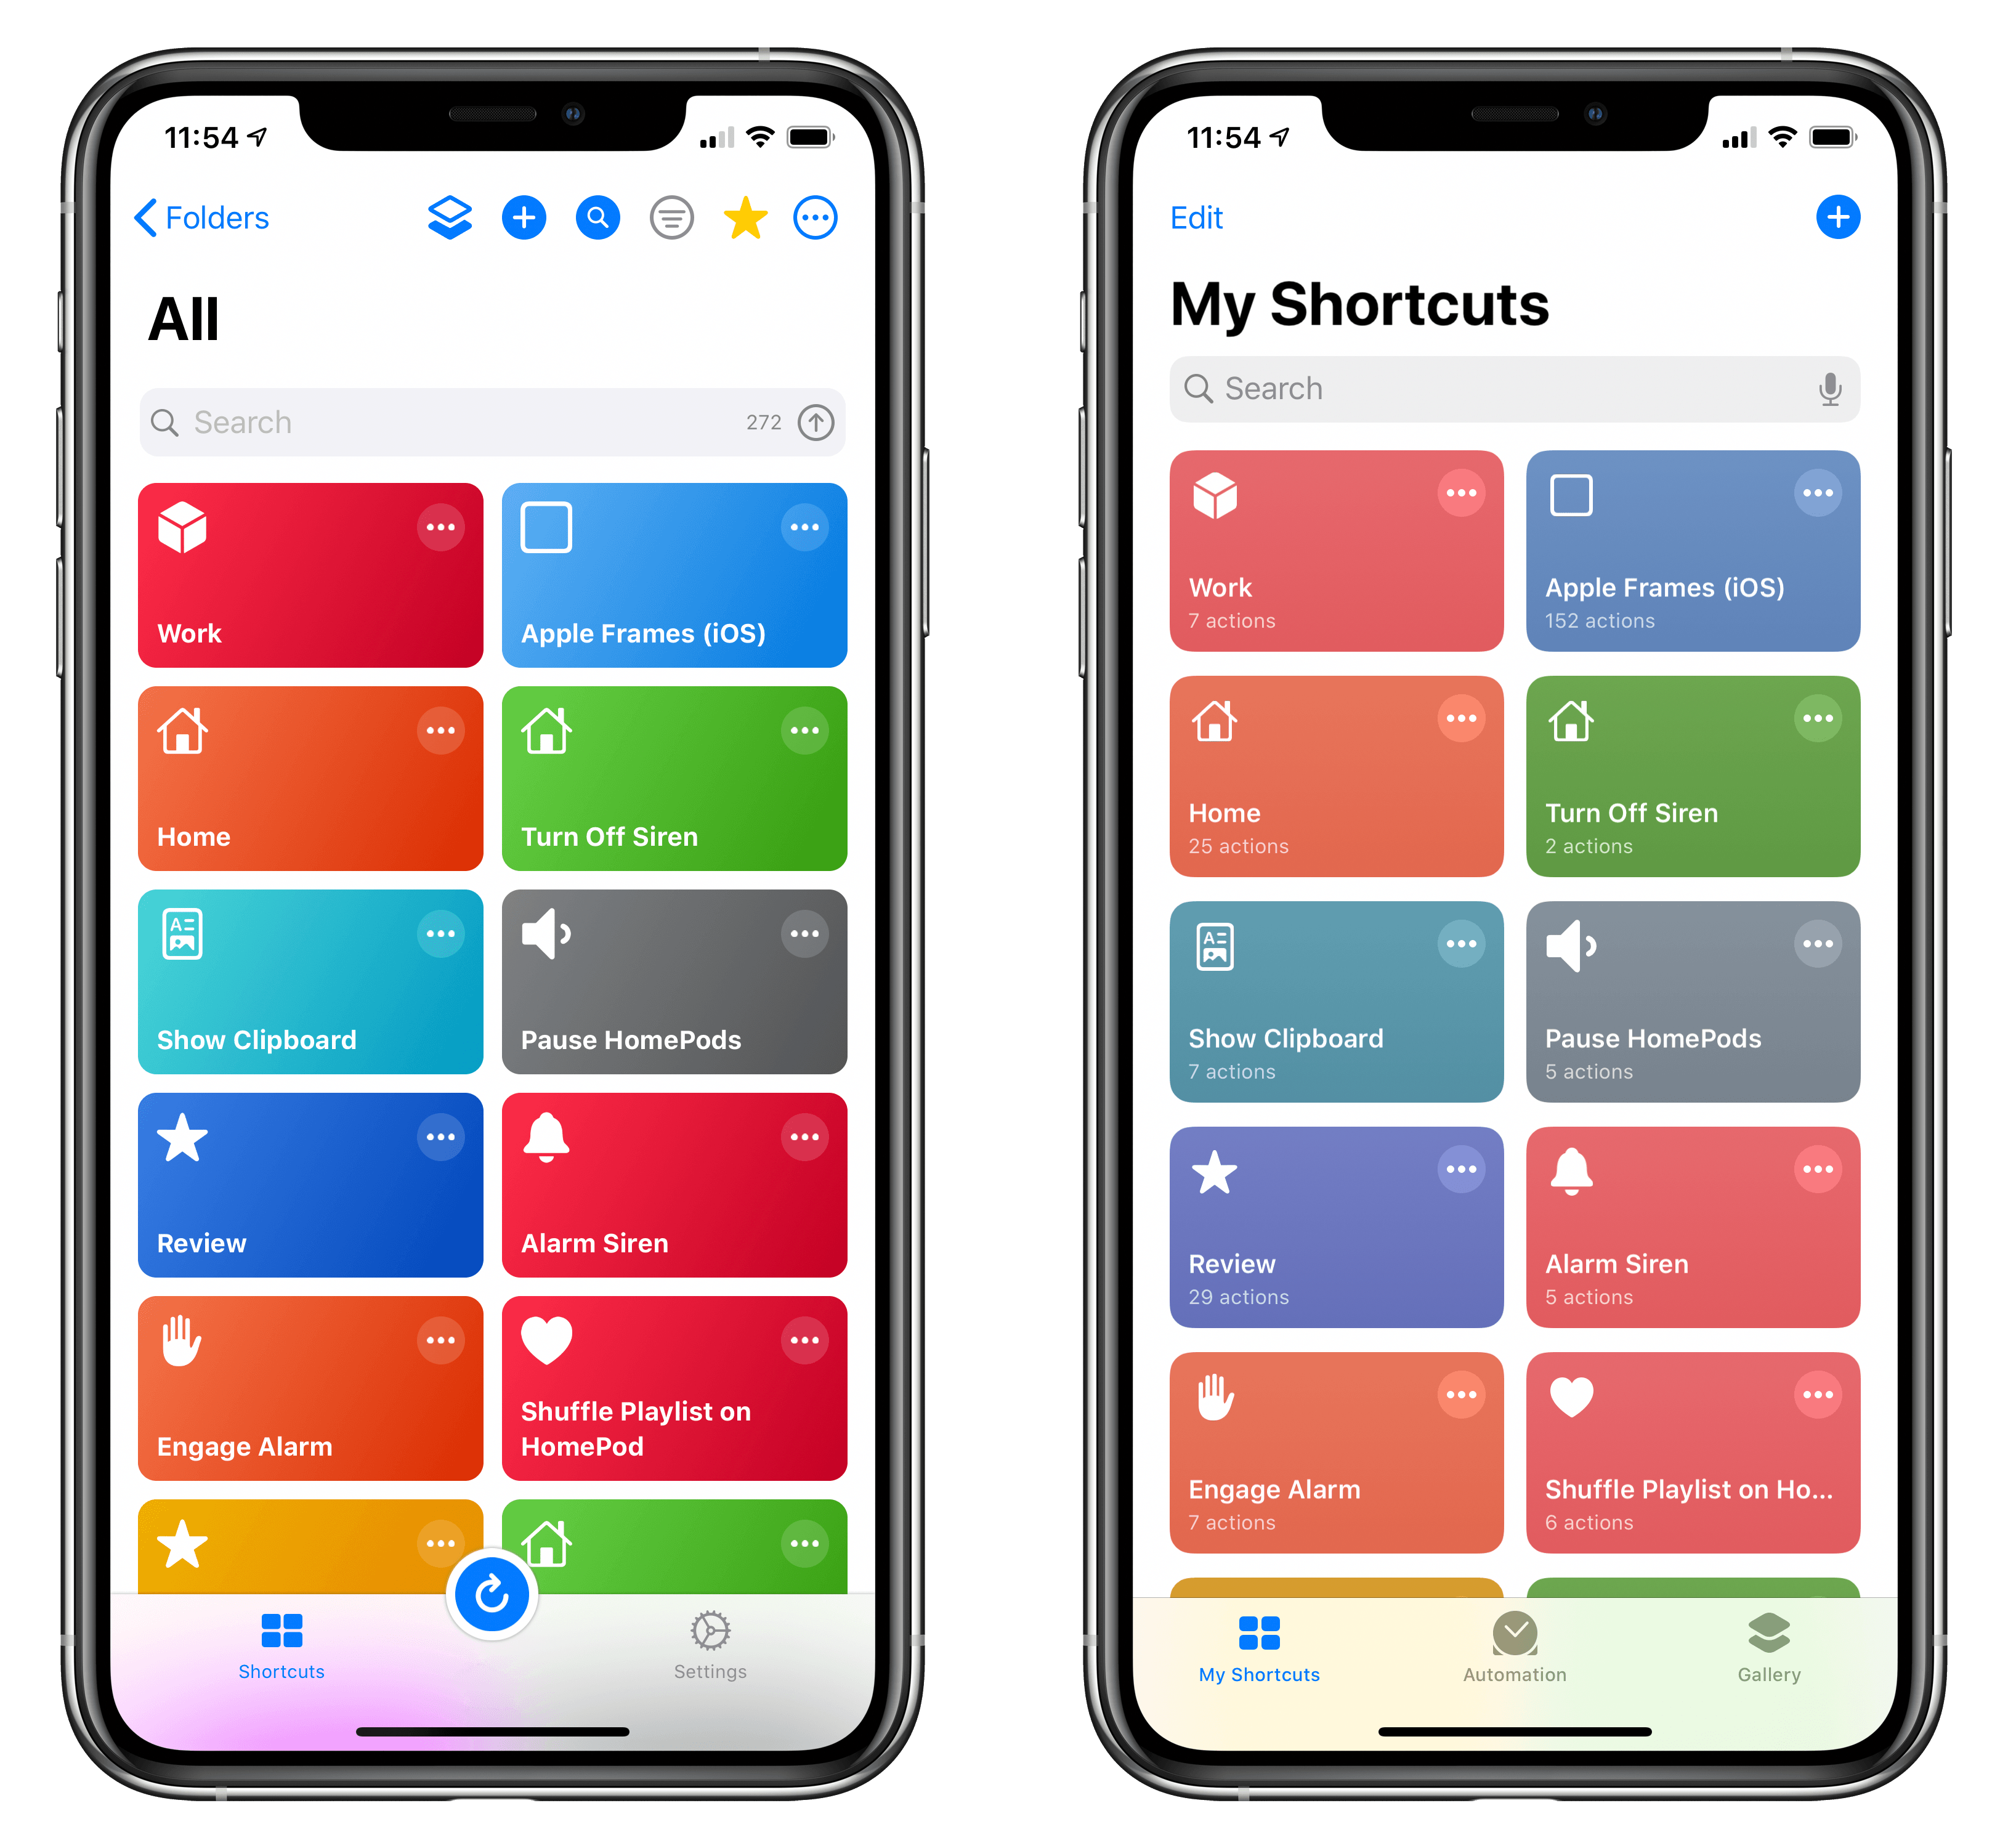 Good colors in LaunchCuts Vs. Whatever Apple did in iOS 13 (right).